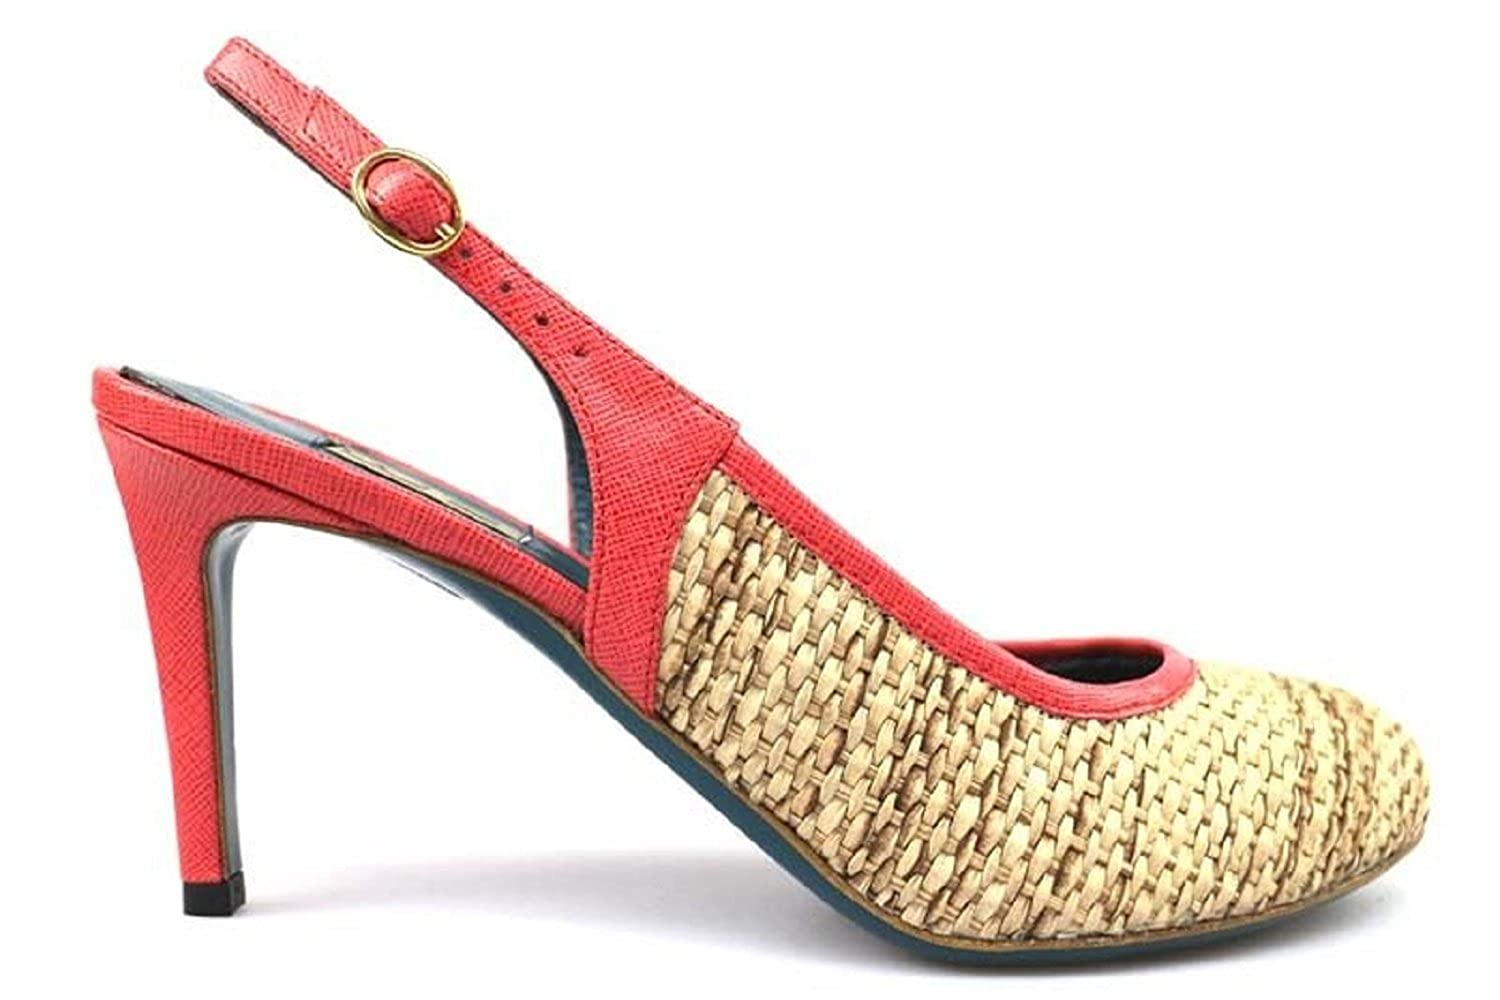 18 KT pumps woman beige red / beige yellow textile leather (8 US / 38 EU )